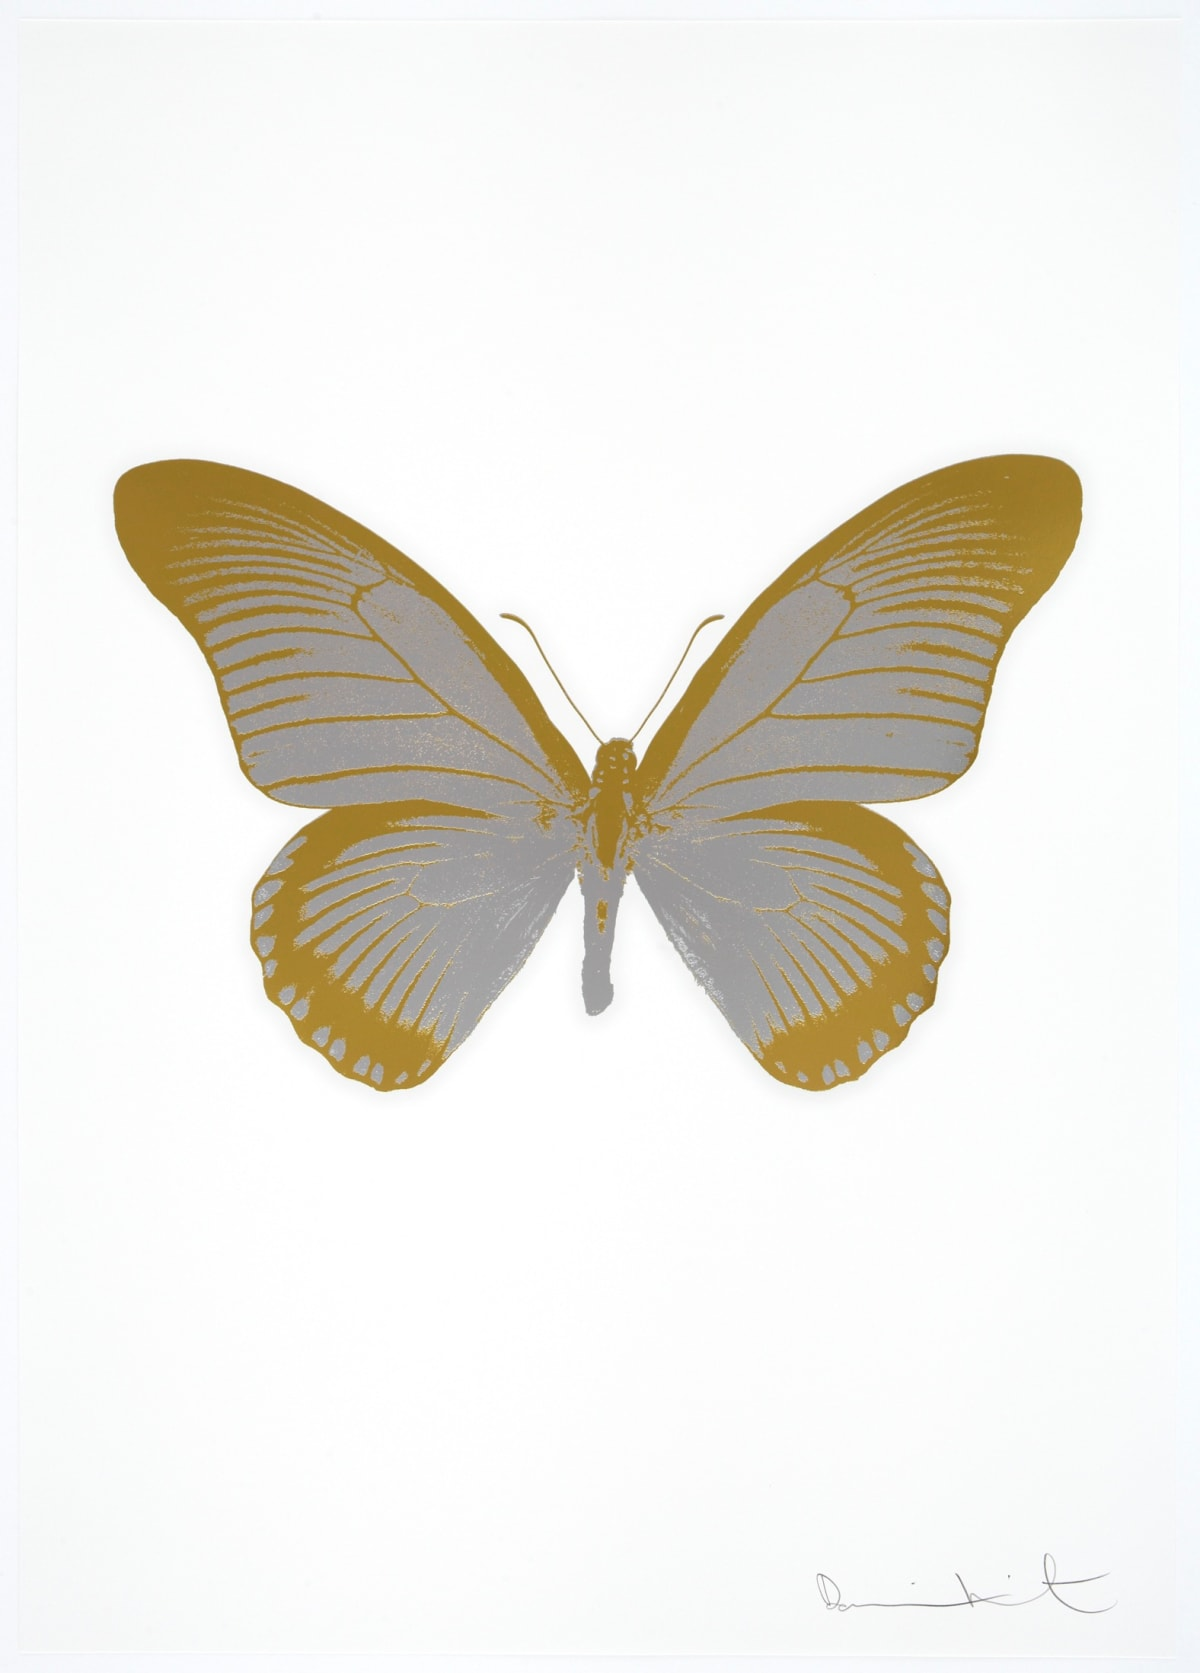 Damien Hirst The Souls IV - Silver Gloss/Oriental Gold Damien Hirst butterfly foil print for sale Damien Hirst print for sale , 2010 2 colour foil block on 300gsm Arches 88 archival paper. Signed and numbered. Published by Paul Stolper and Other Criteria 72 x 51cm OC7989 / 1418-12 Edition of 15